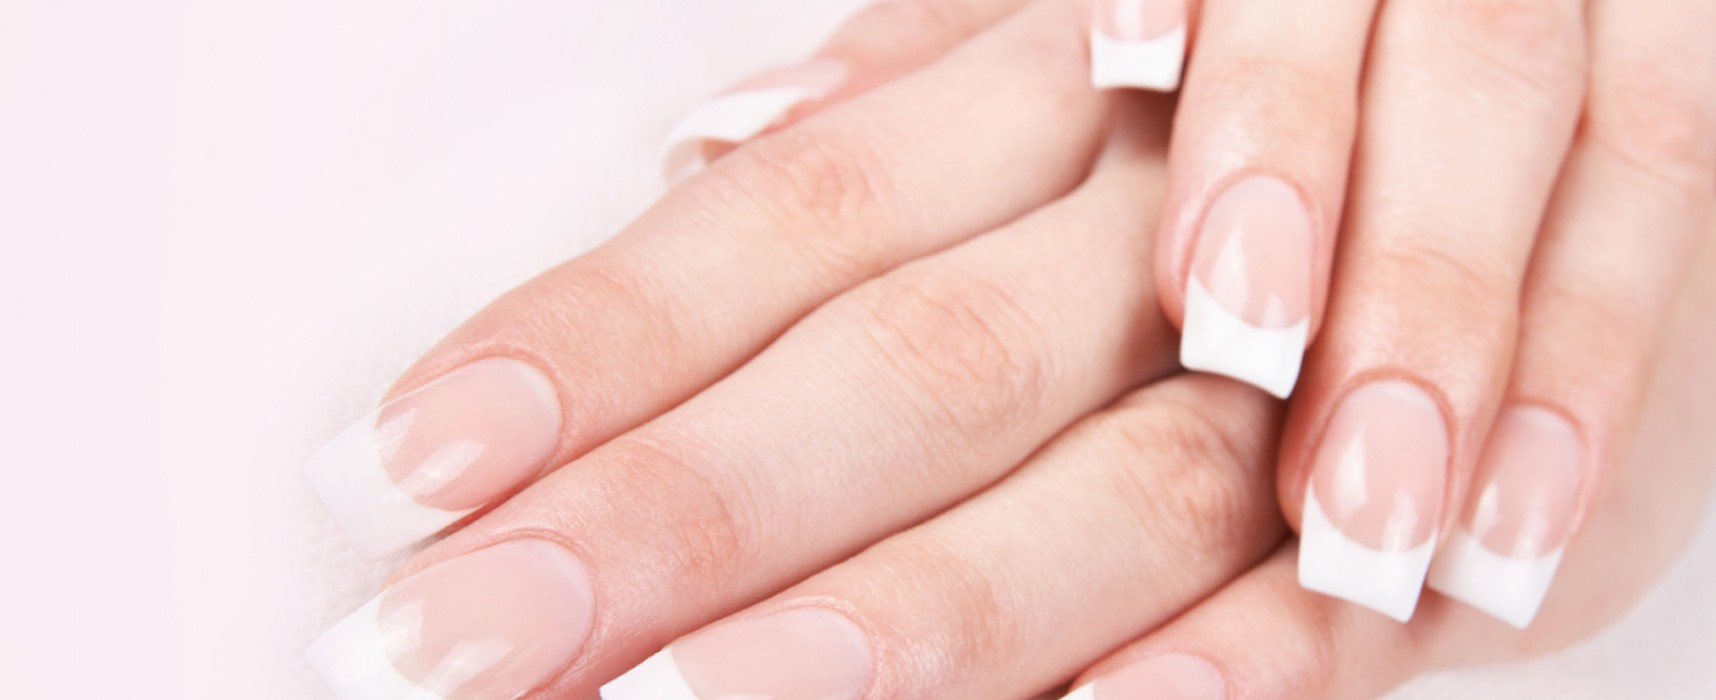 Facts You Should Know About Nail Fungus